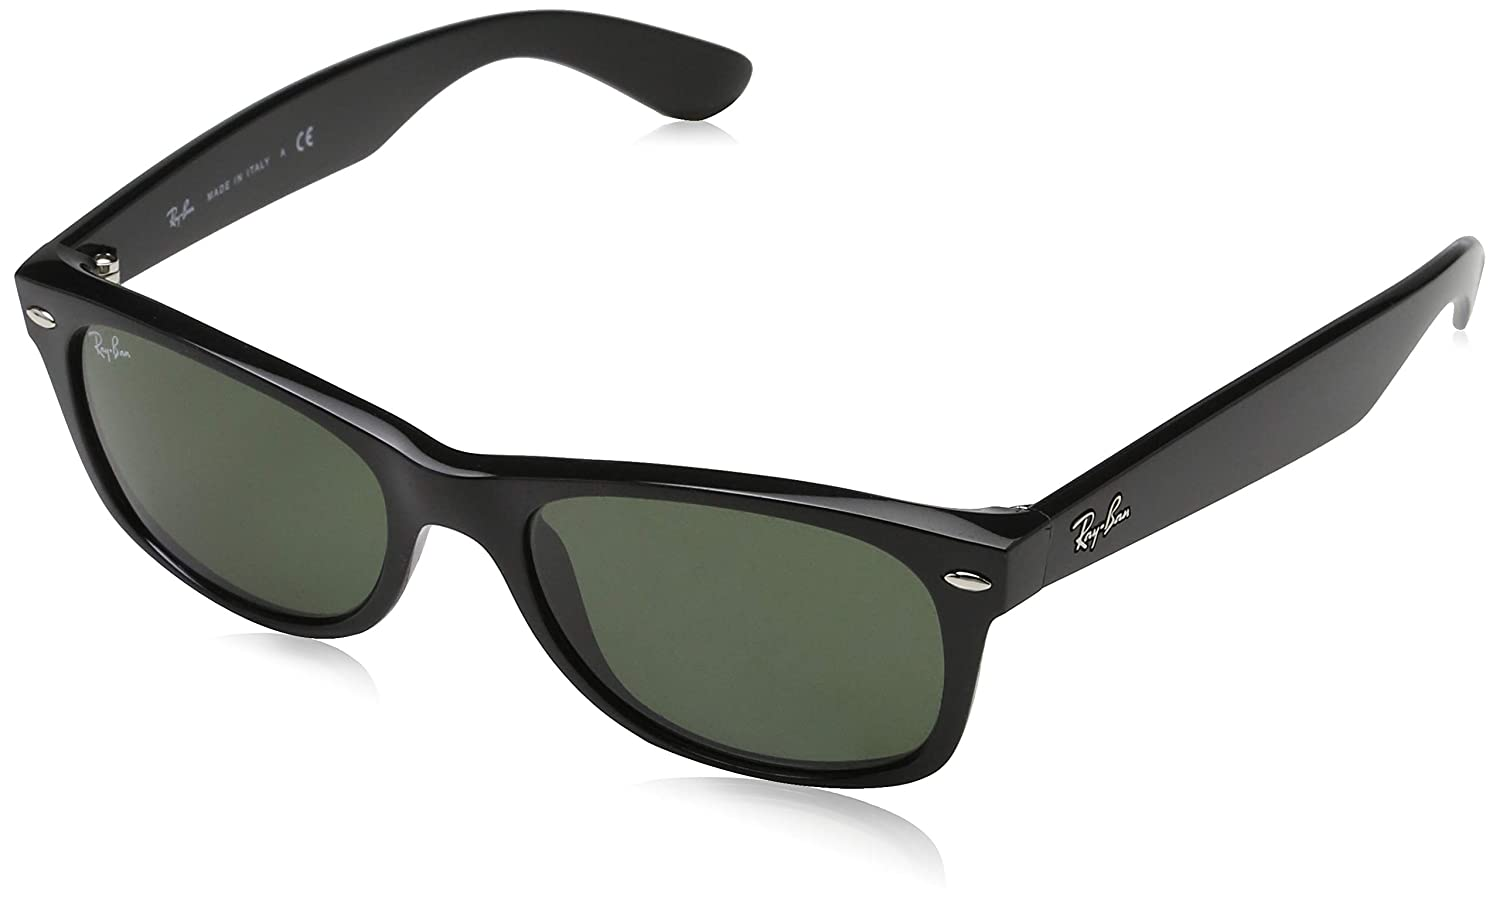 0239daf894 Amazon.com: Ray-Ban NEW WAYFARER - BLACK Frame CRYSTAL GREEN Lenses 52mm  Non-Polarized: Ray-Ban: Shoes